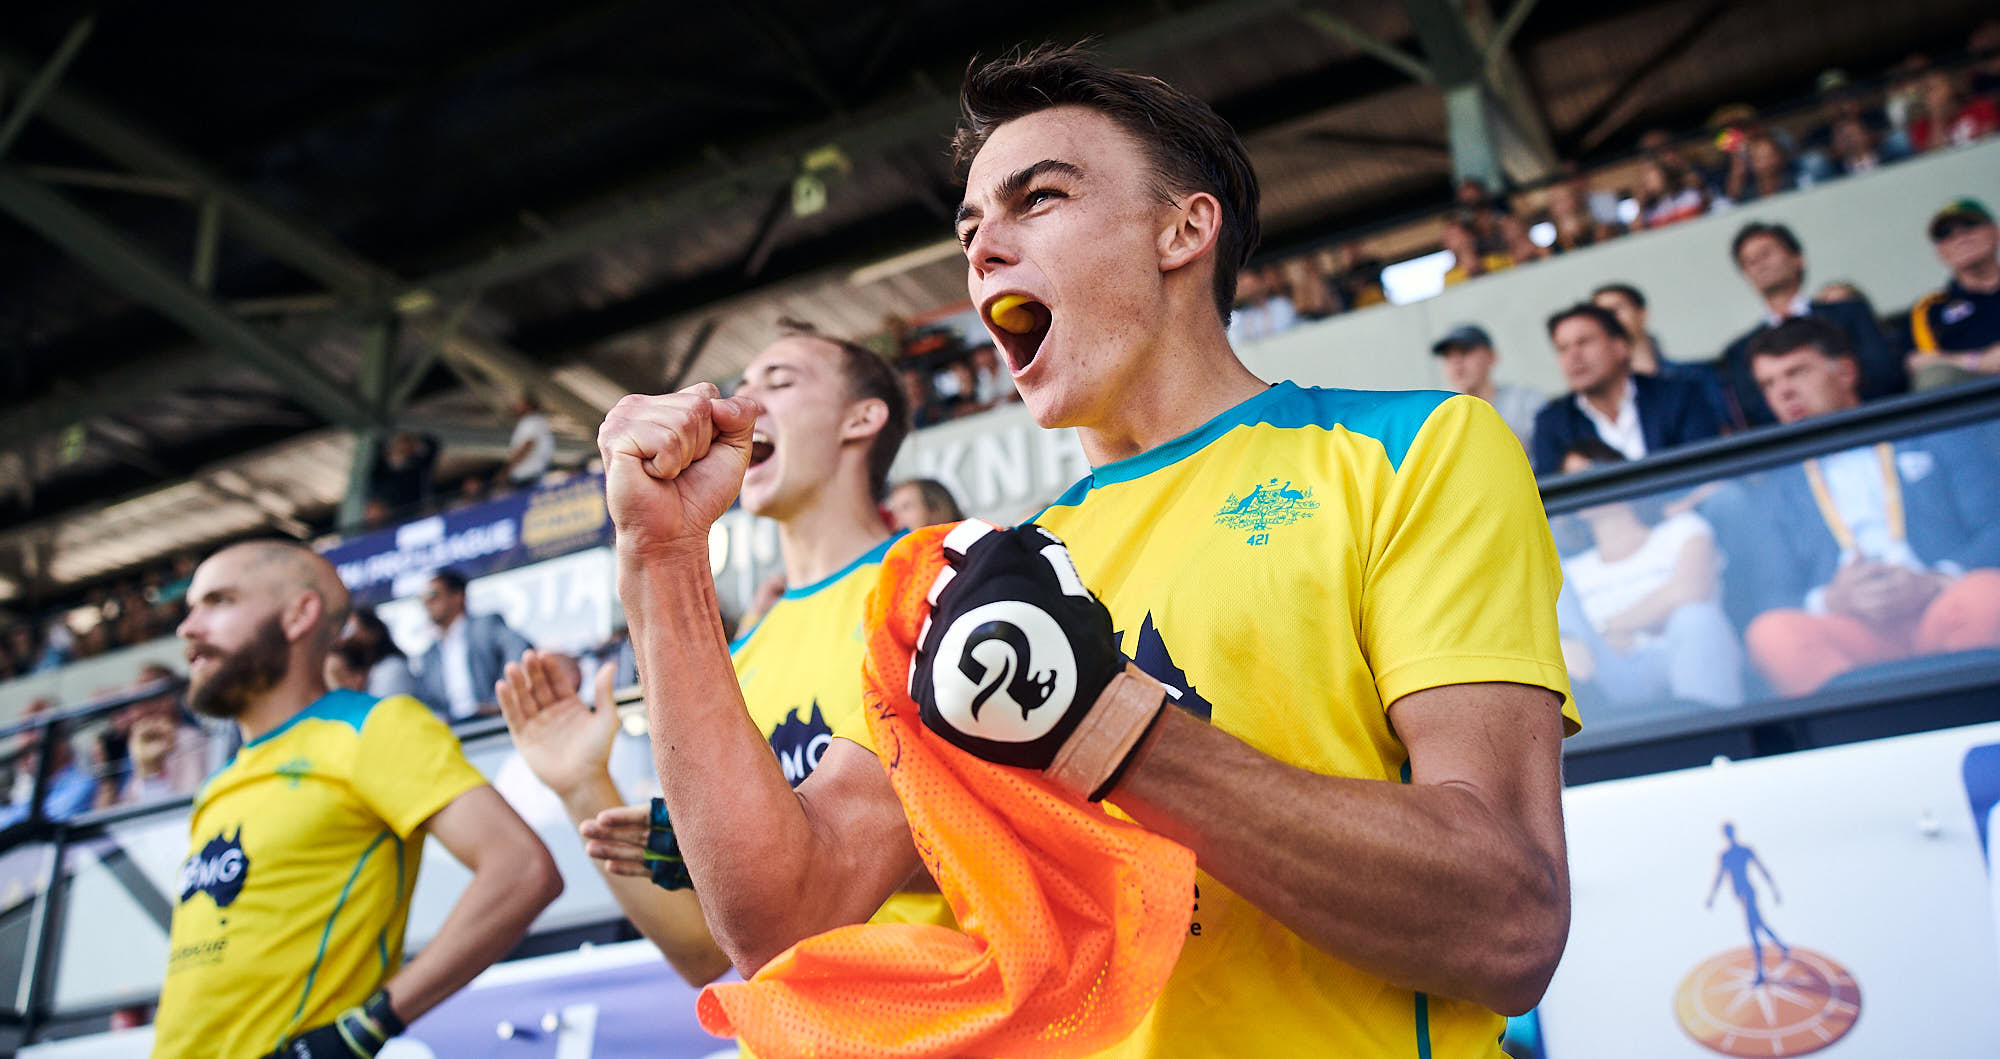 Australian hockey players cheering during 2019 FIH Pro League finals in Amsterdam